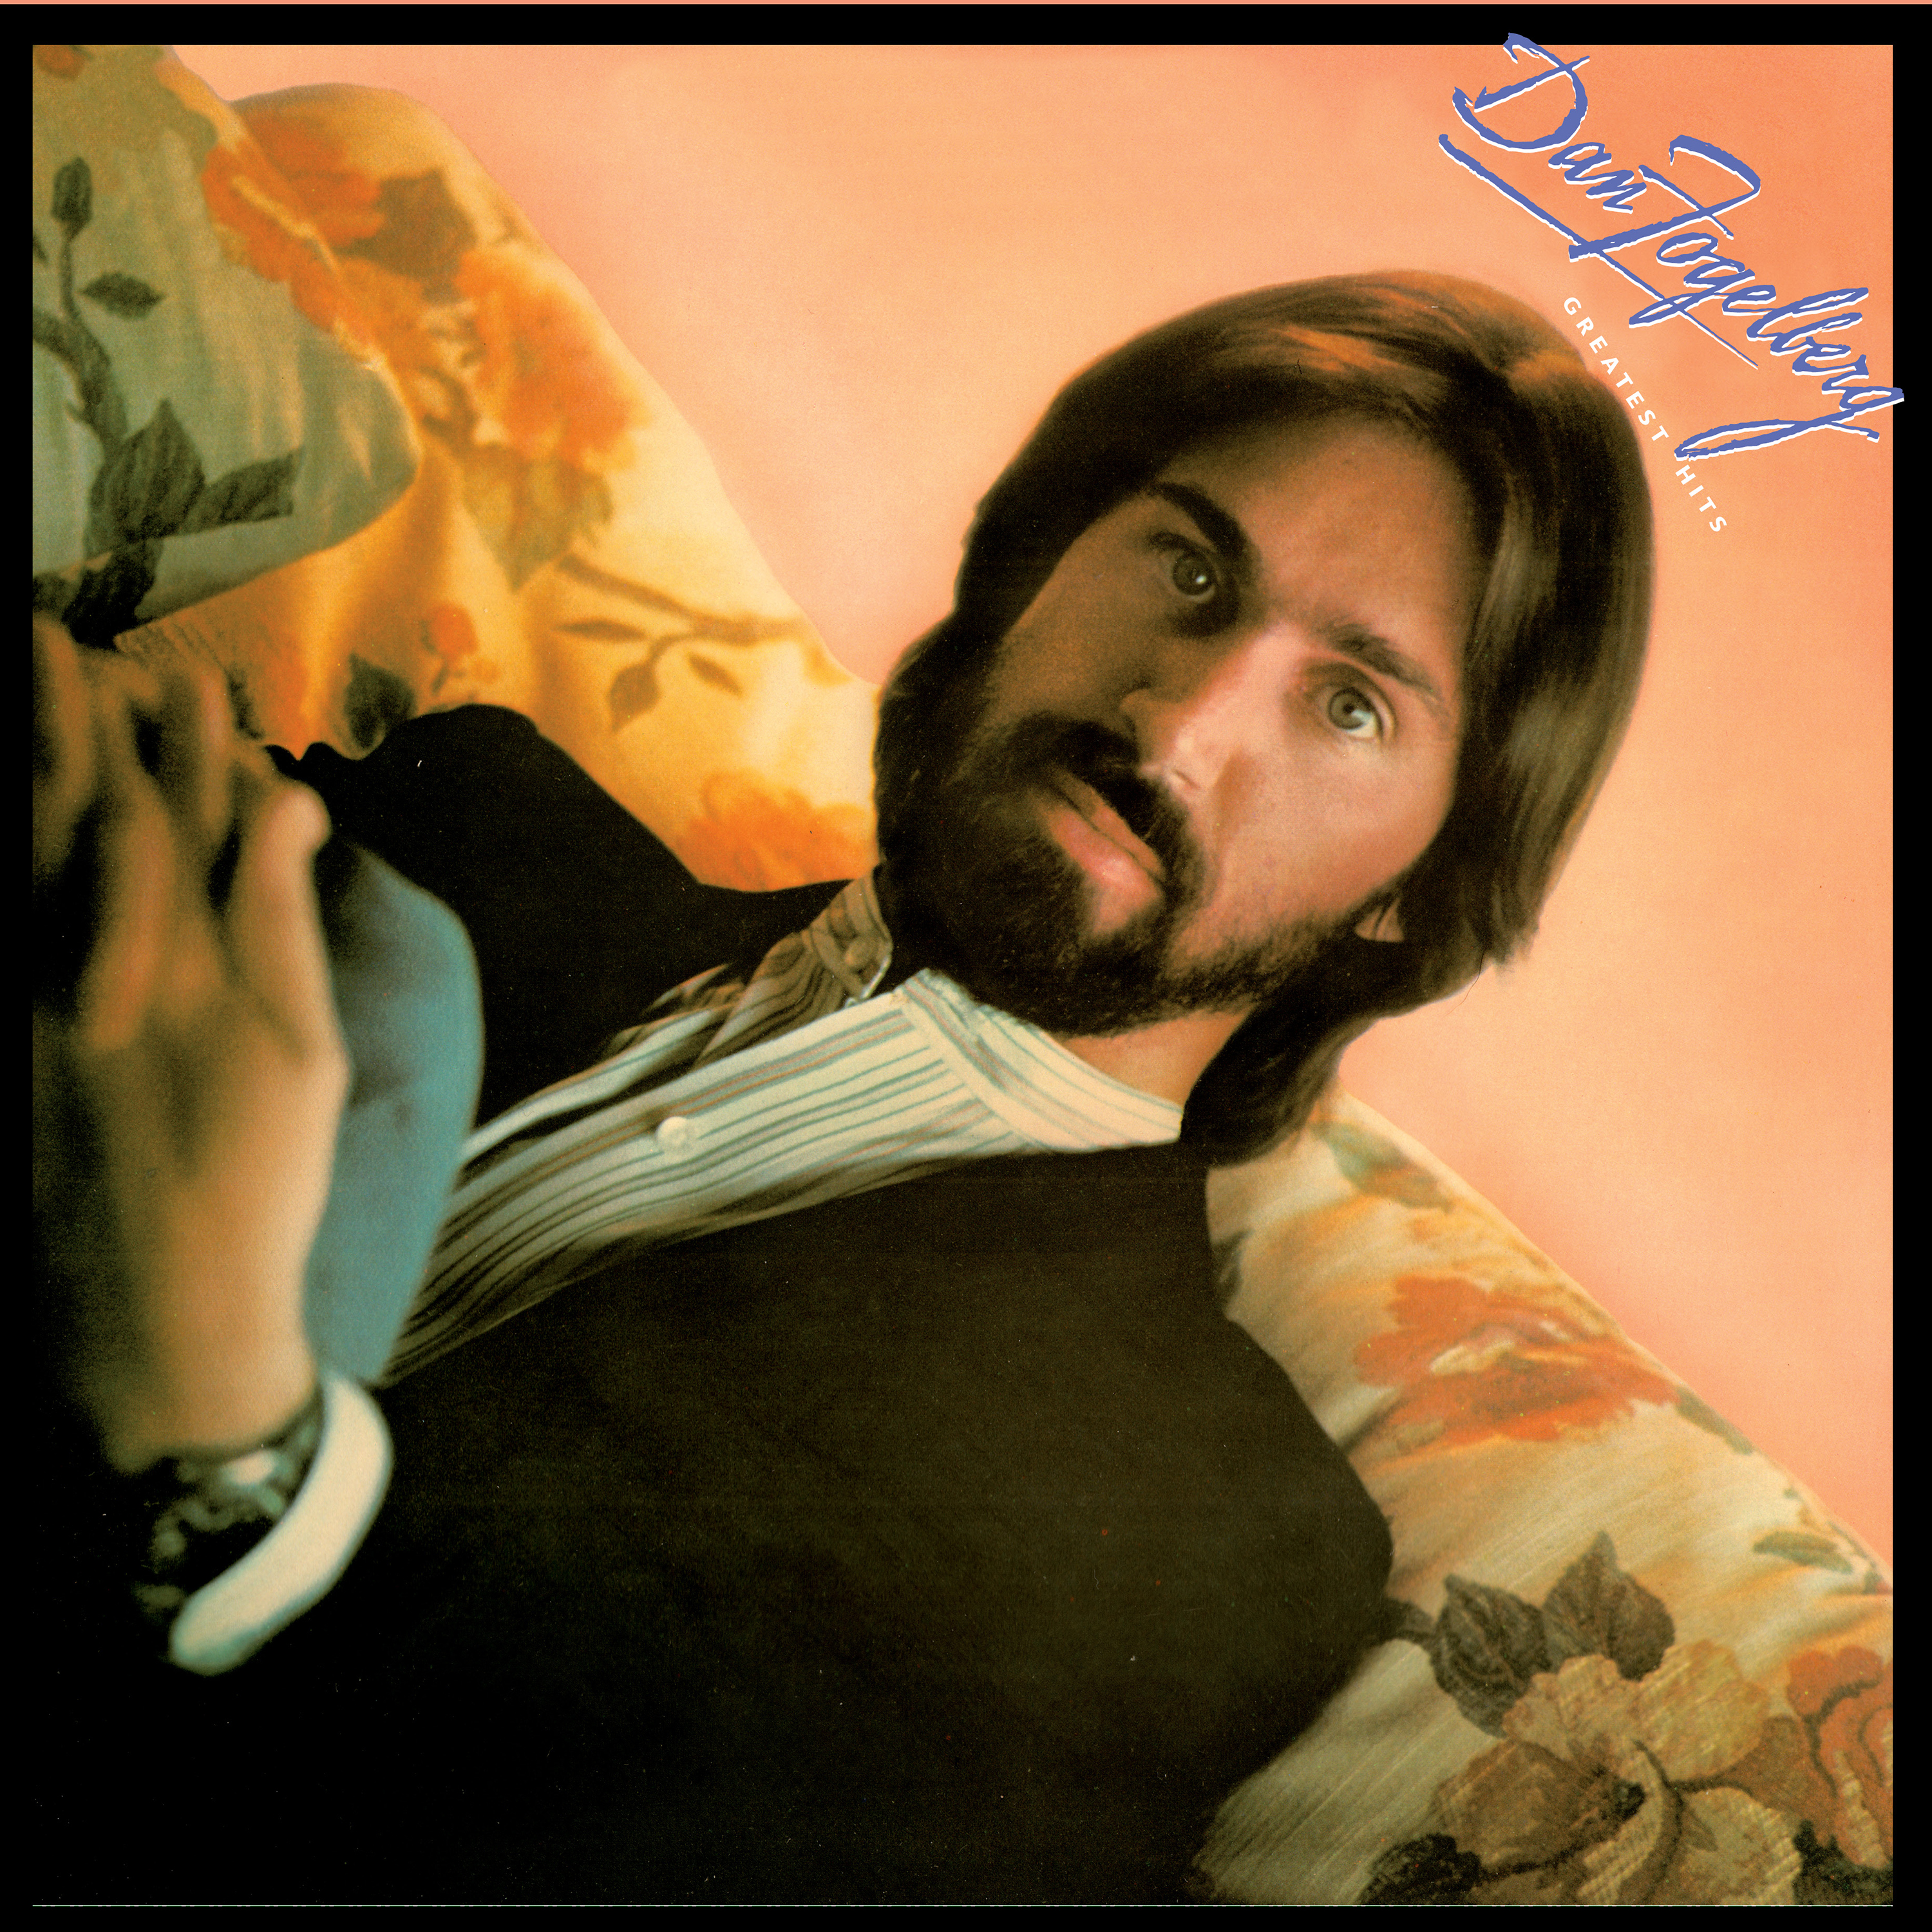 Dan Fogelberg - Greatest Hits (180 Gram Translucent Blue & Black Swirl Audiophile Vinyl/Limited Anniversary Edition/Gatefold Cover)